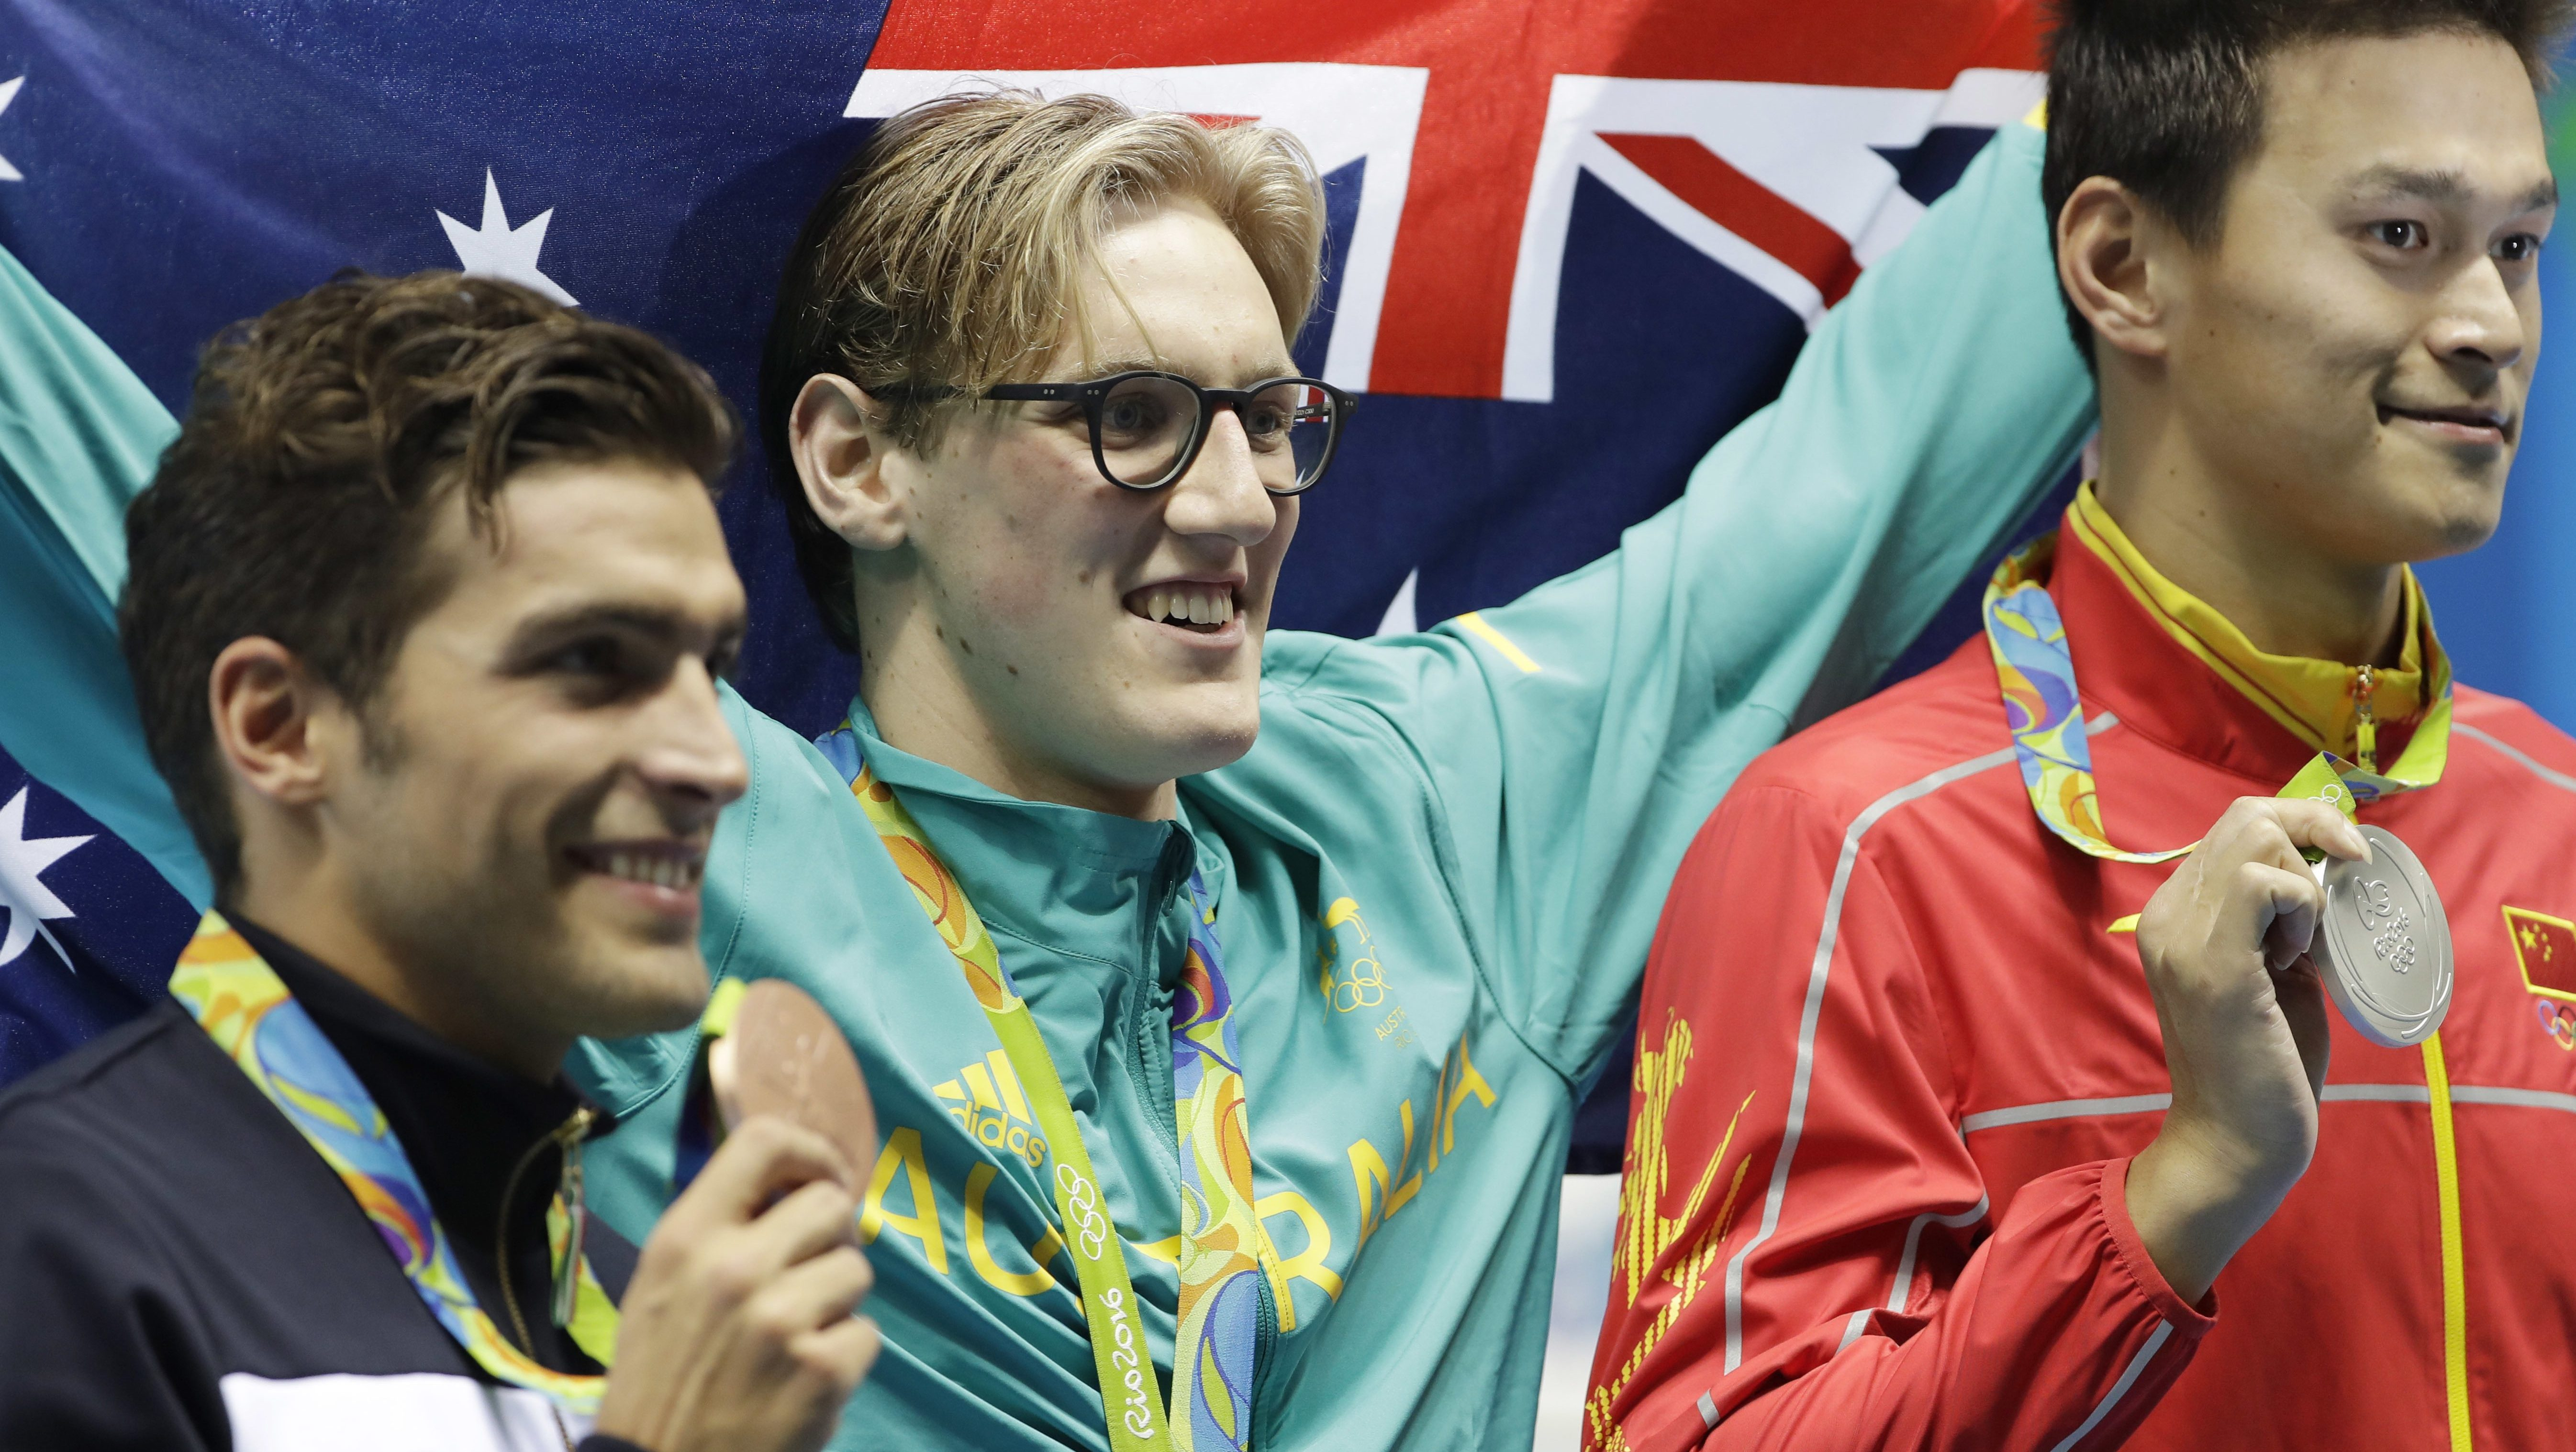 Australia's Mack Horton, center, second placed Italy's Gabriele Detti, left, and third placed China's Sun Yang hold their medals after the men's 400-meter freestyle during the swimming competitions at the 2016 Olympics, Aug. 6, in Rio de Janeiro, Brazil.